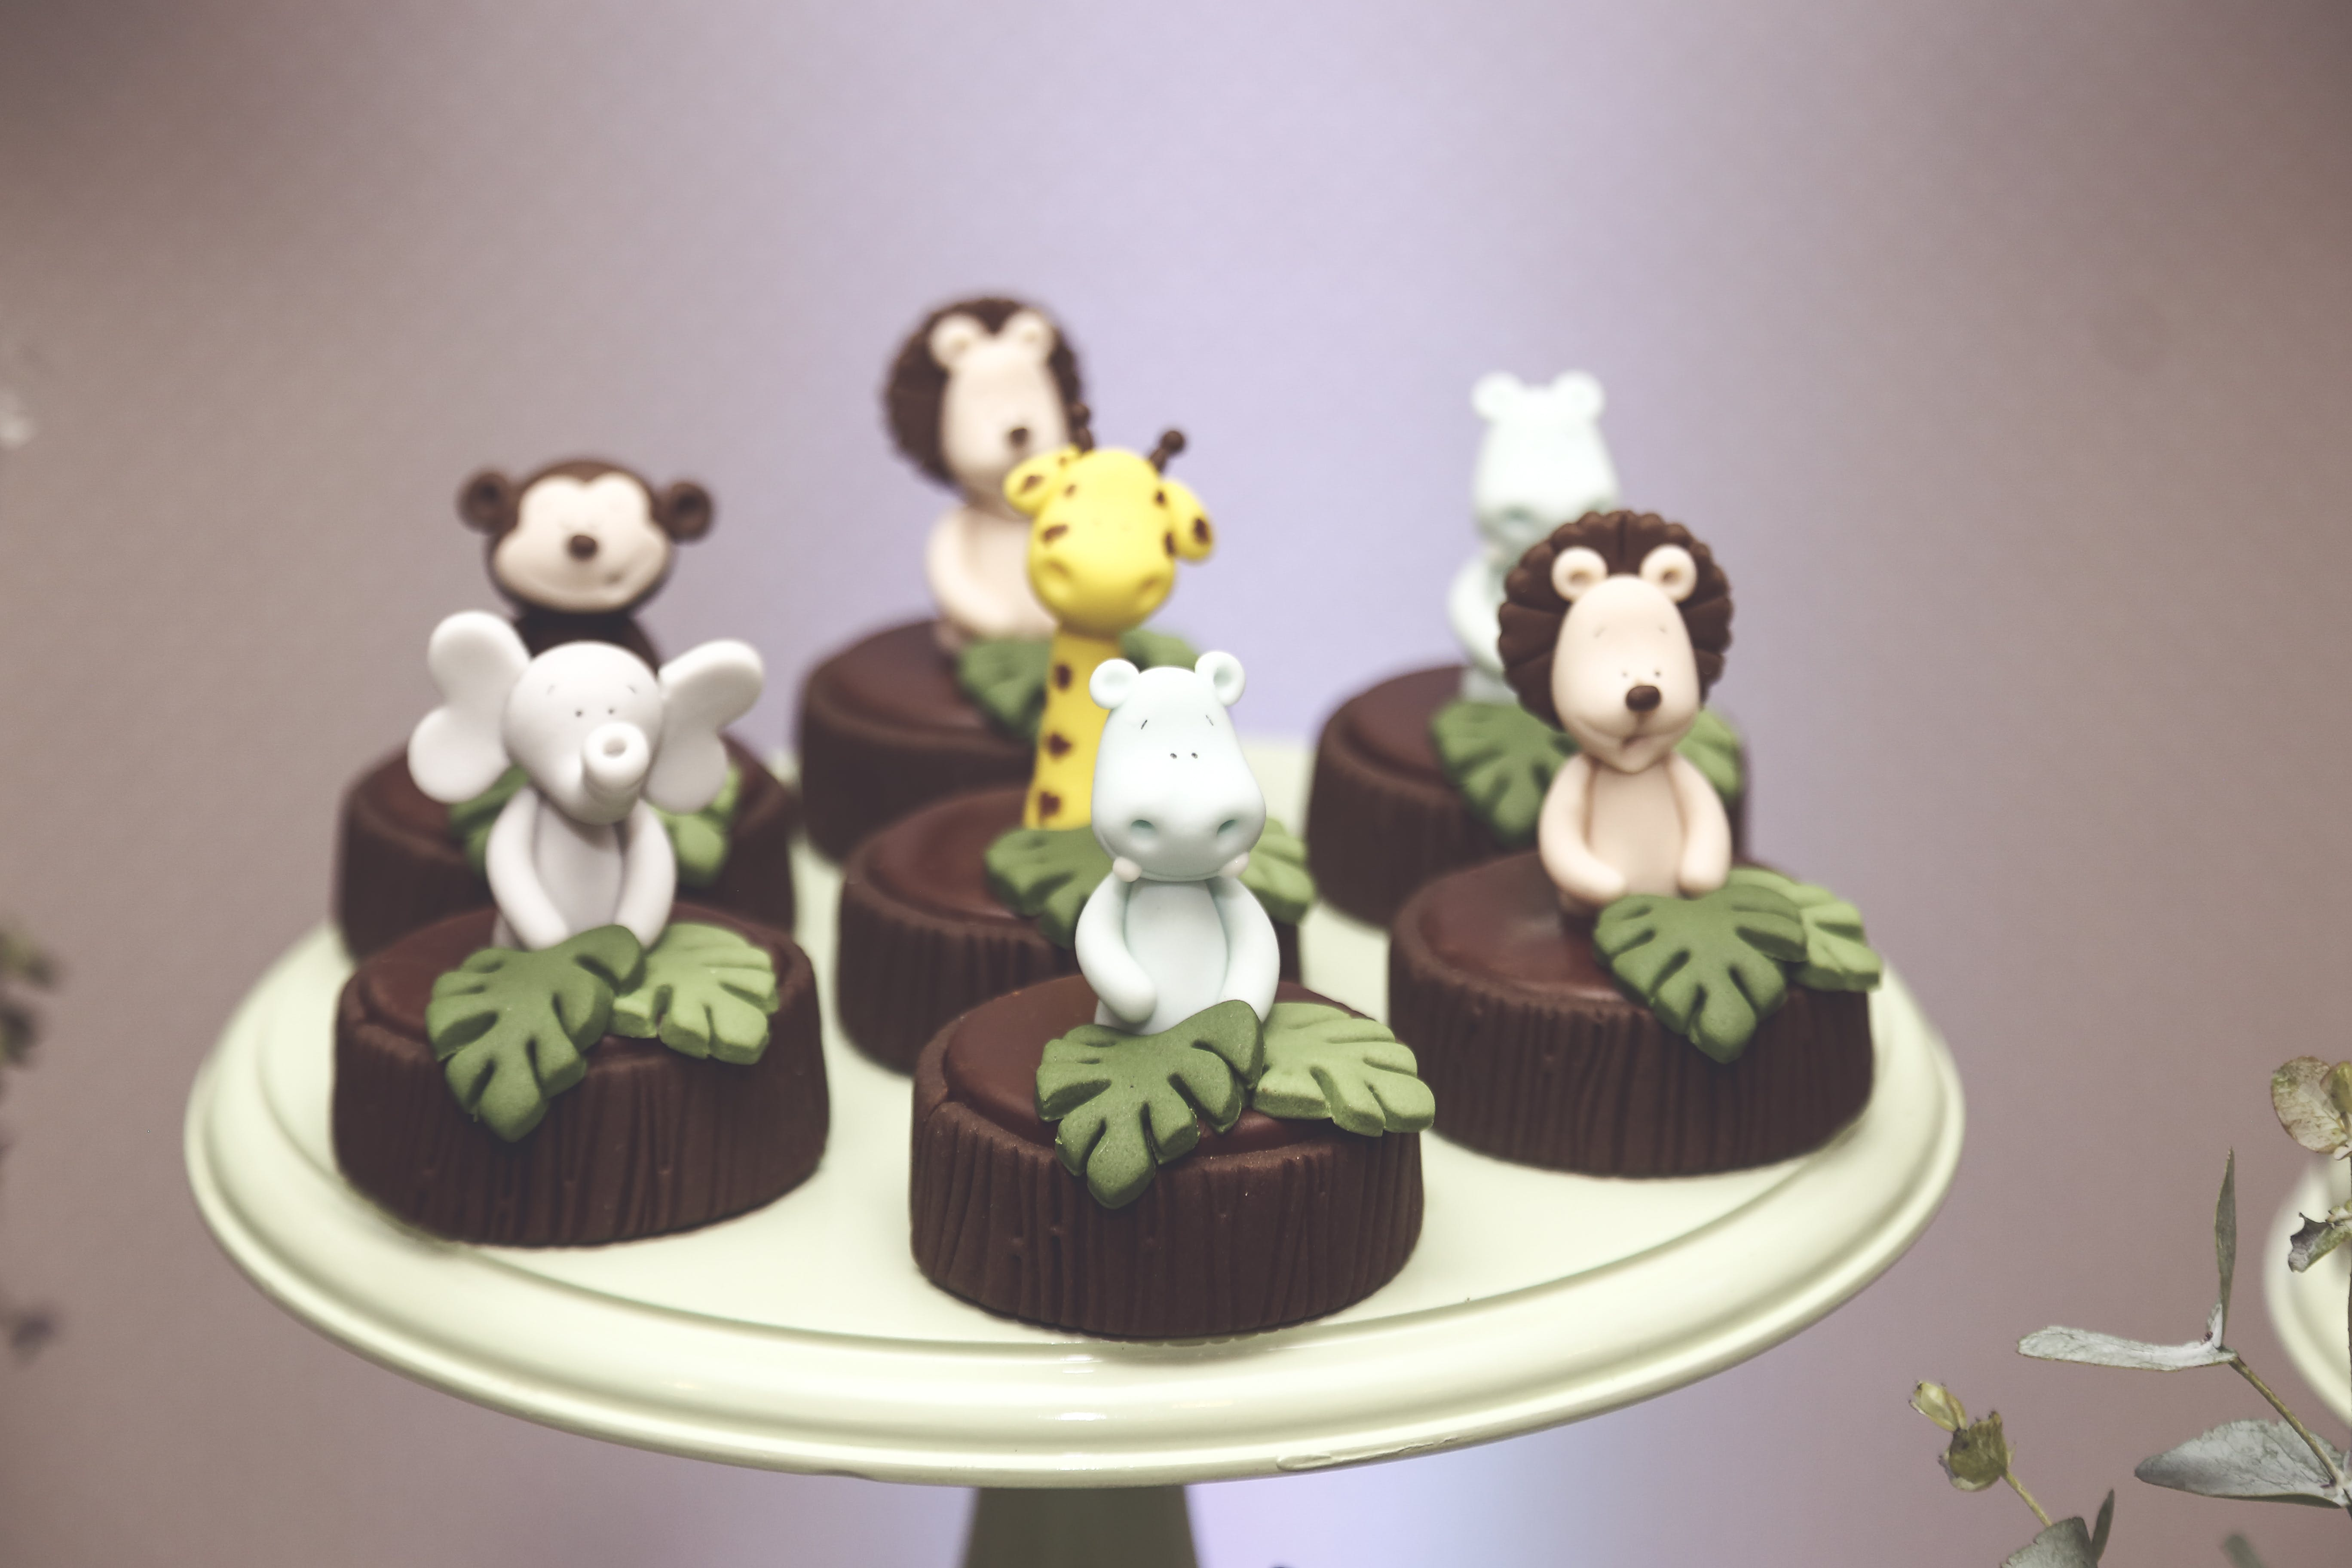 Round Chocolates With Animals Decorated On Top